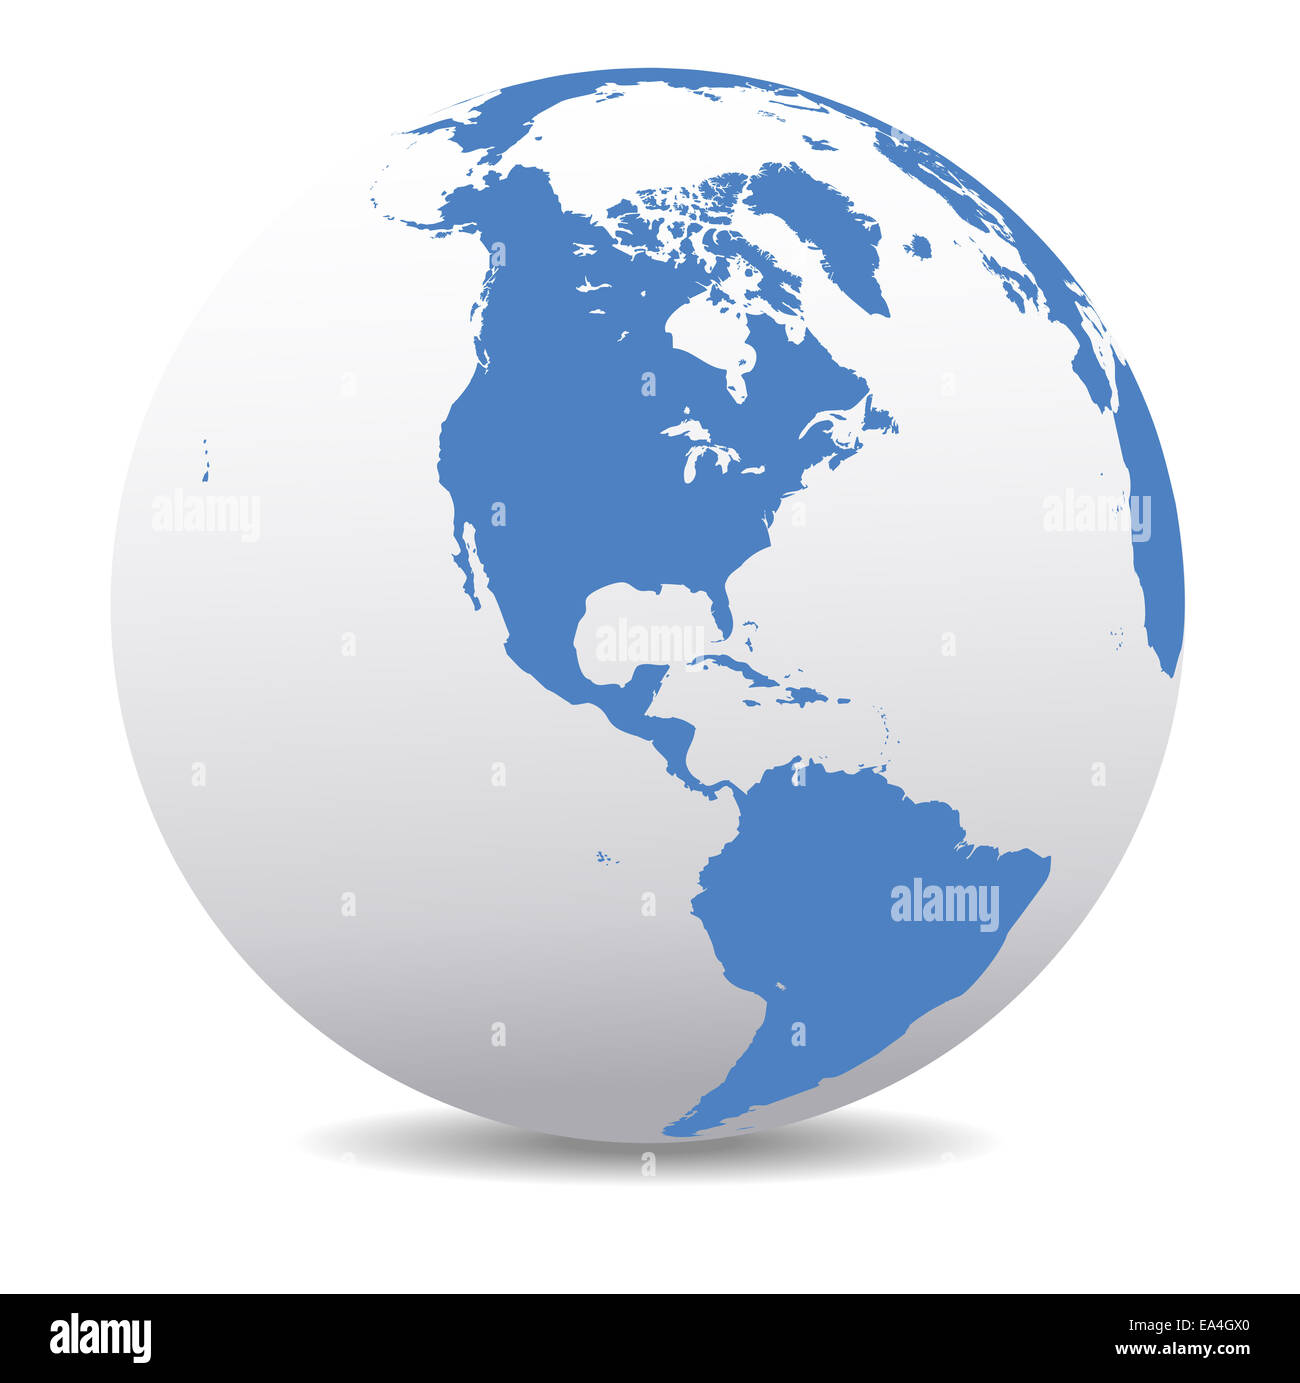 America canada world earth icon globe map stock photo 75089112 alamy america canada world earth icon globe map gumiabroncs Gallery